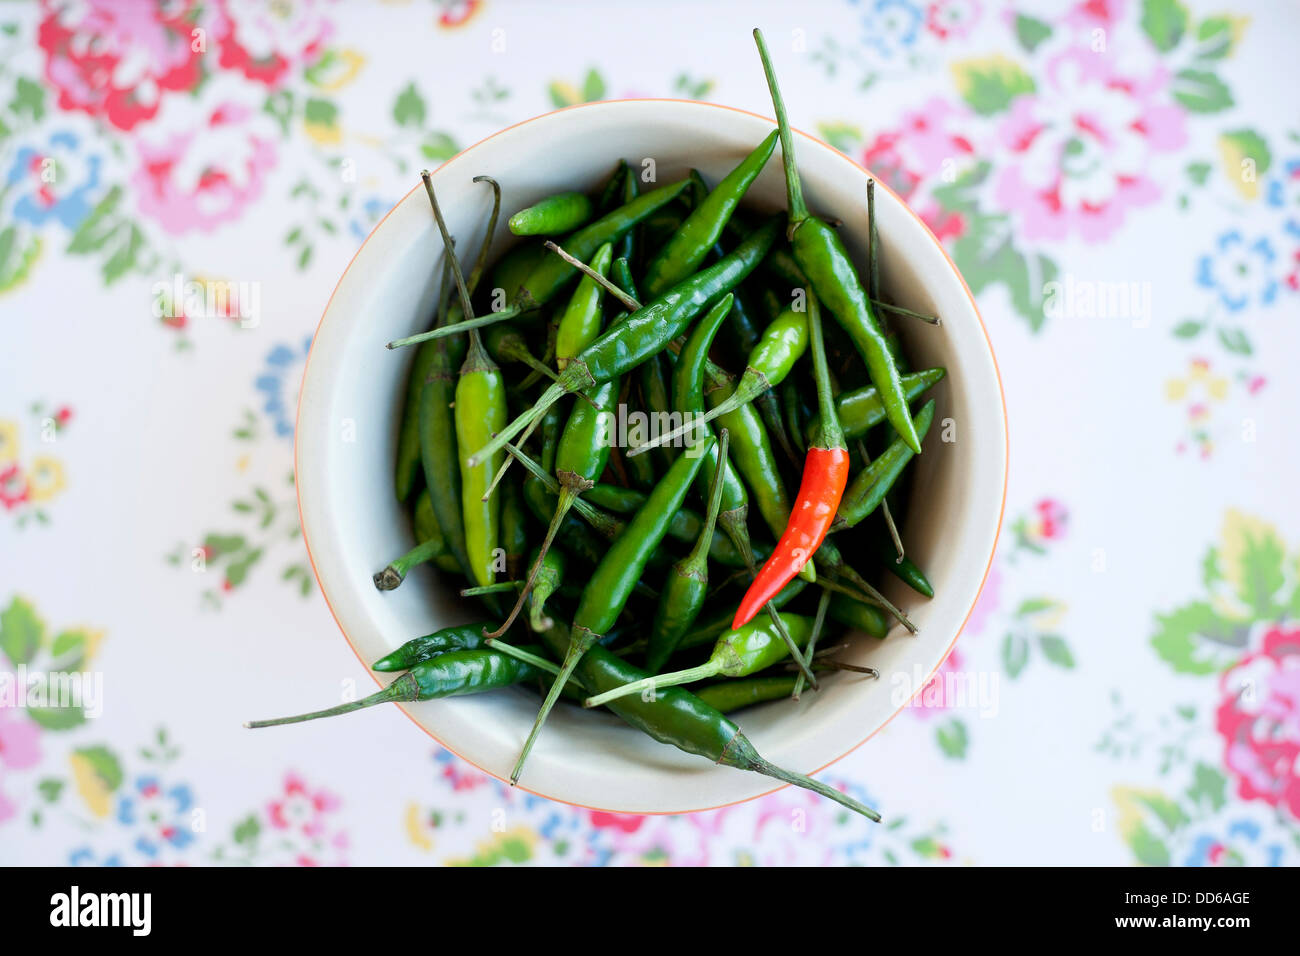 Bowl of Bird's eye chillies on flower print background. Top down view. - Stock Image